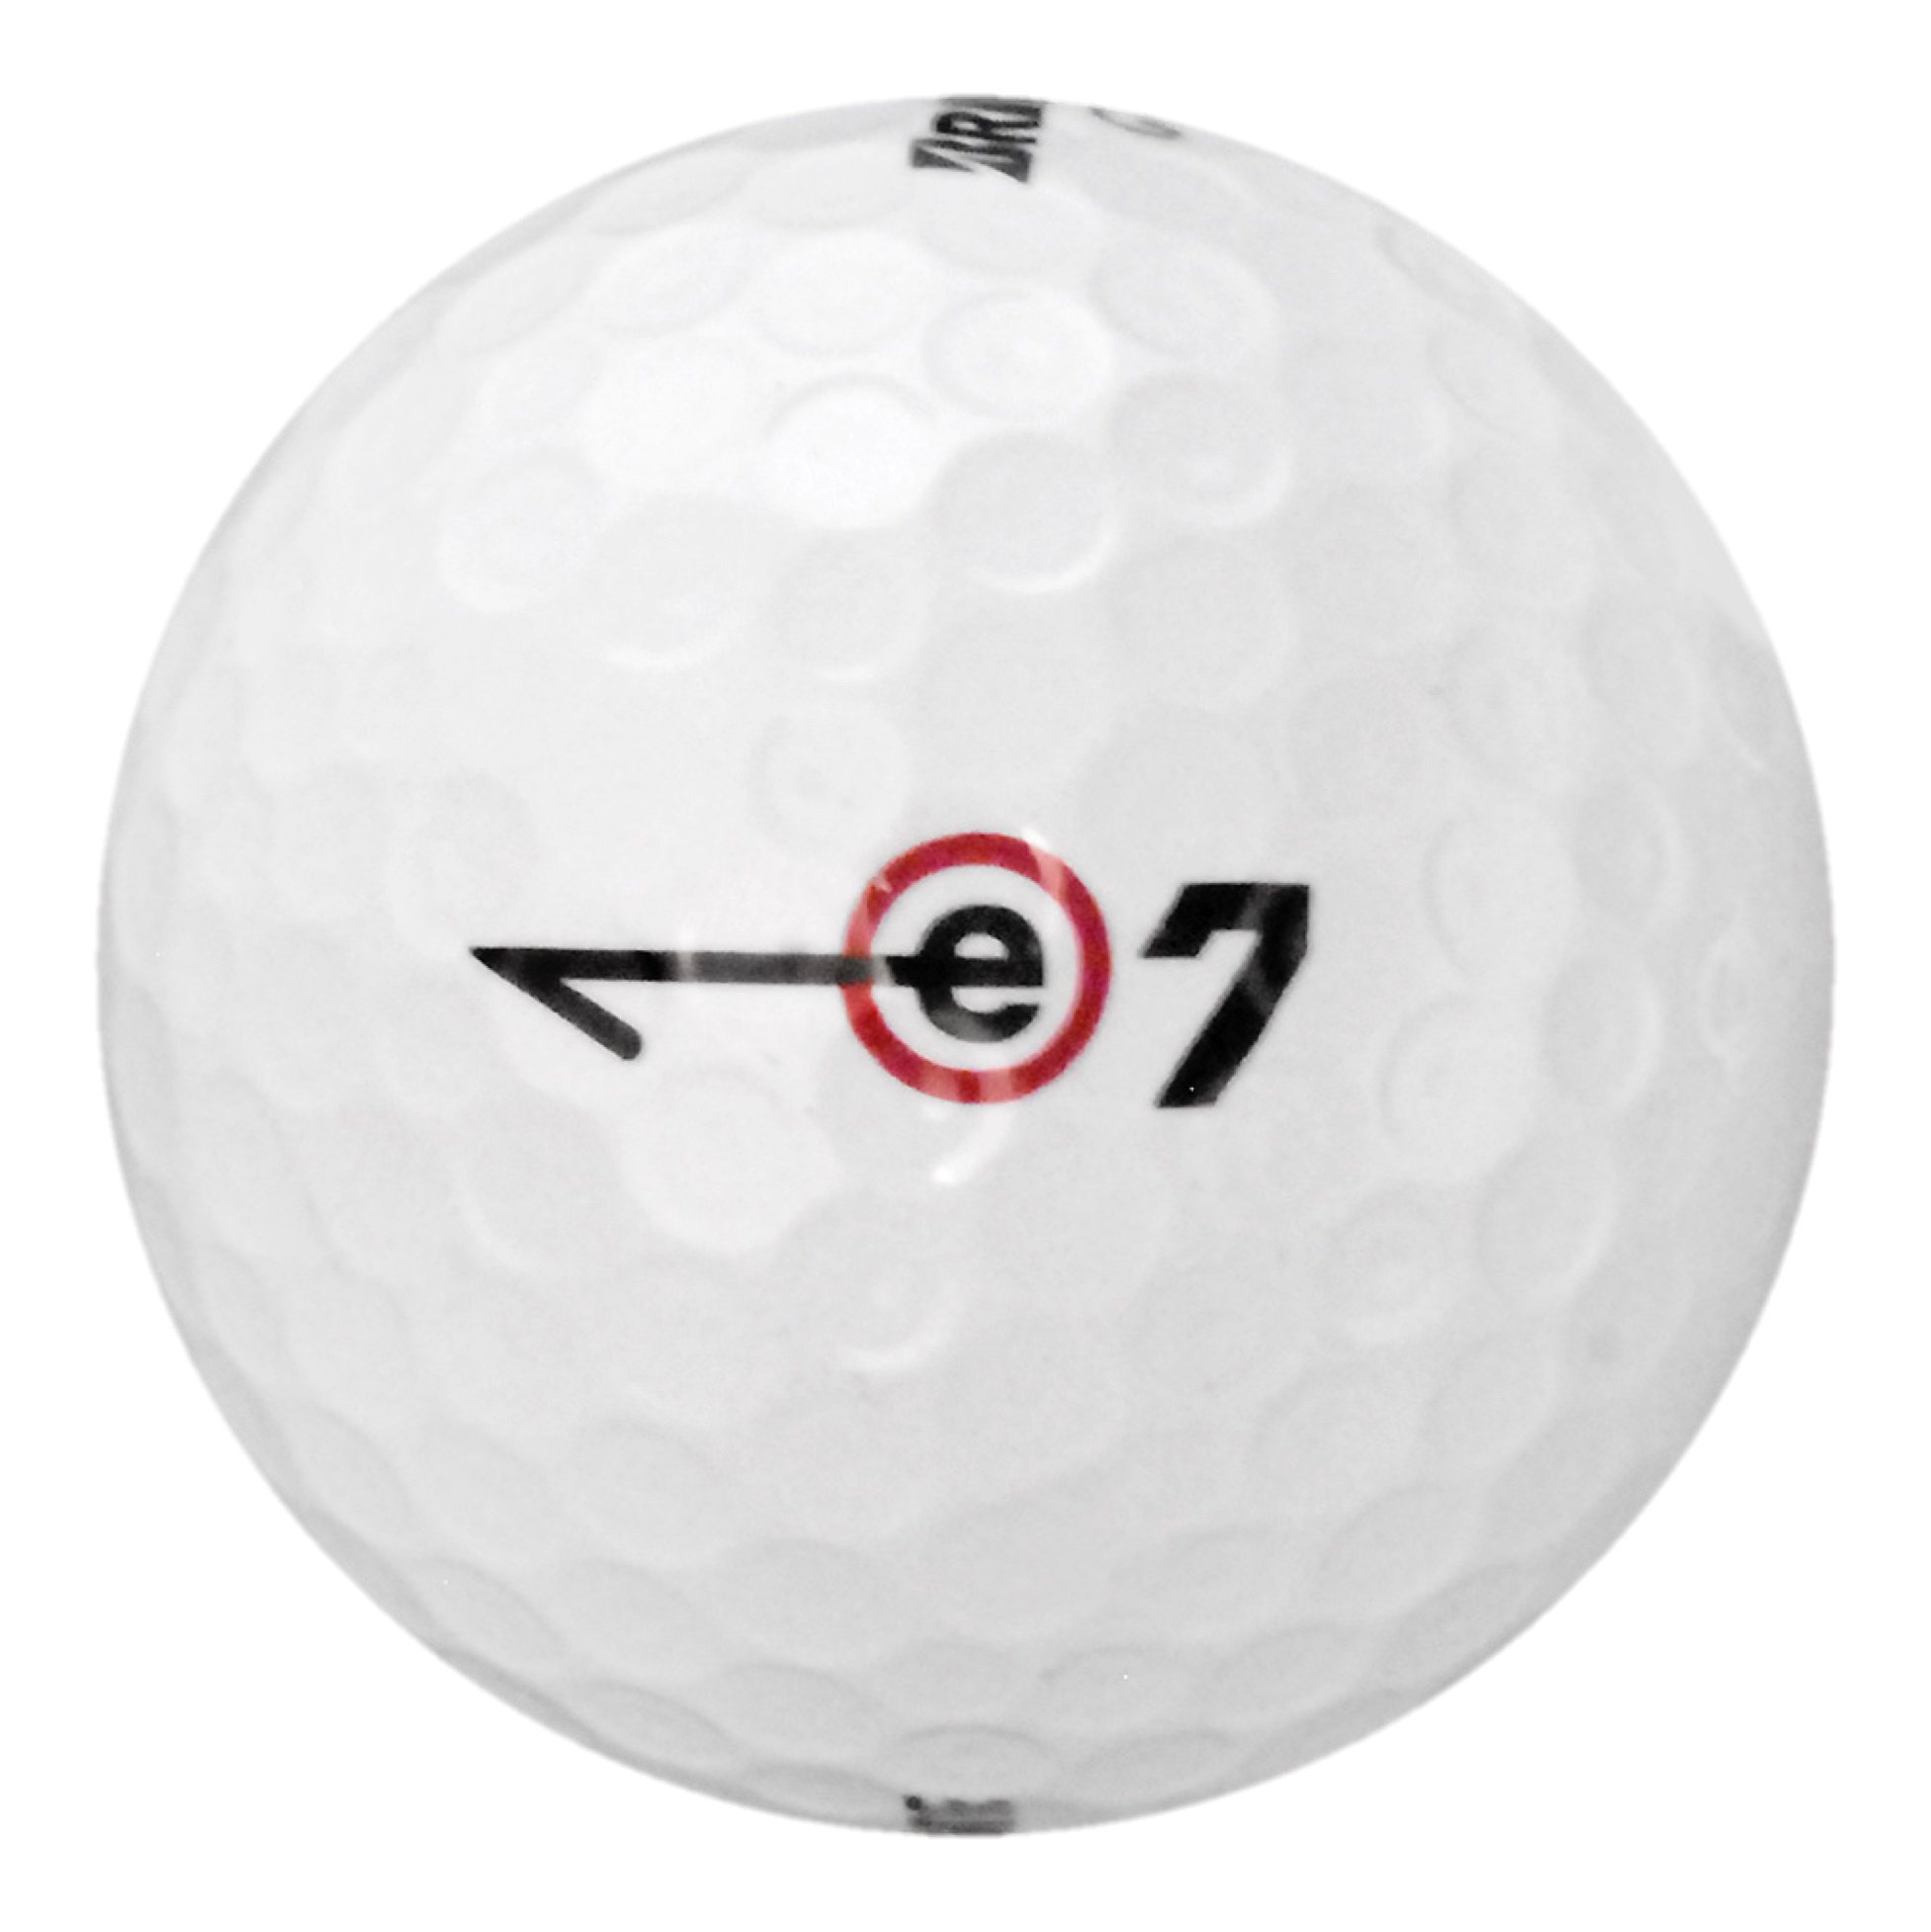 96 Bridgestone e7 - Near Mint (AAAA) Grade - Recycled (Used) Golf Balls